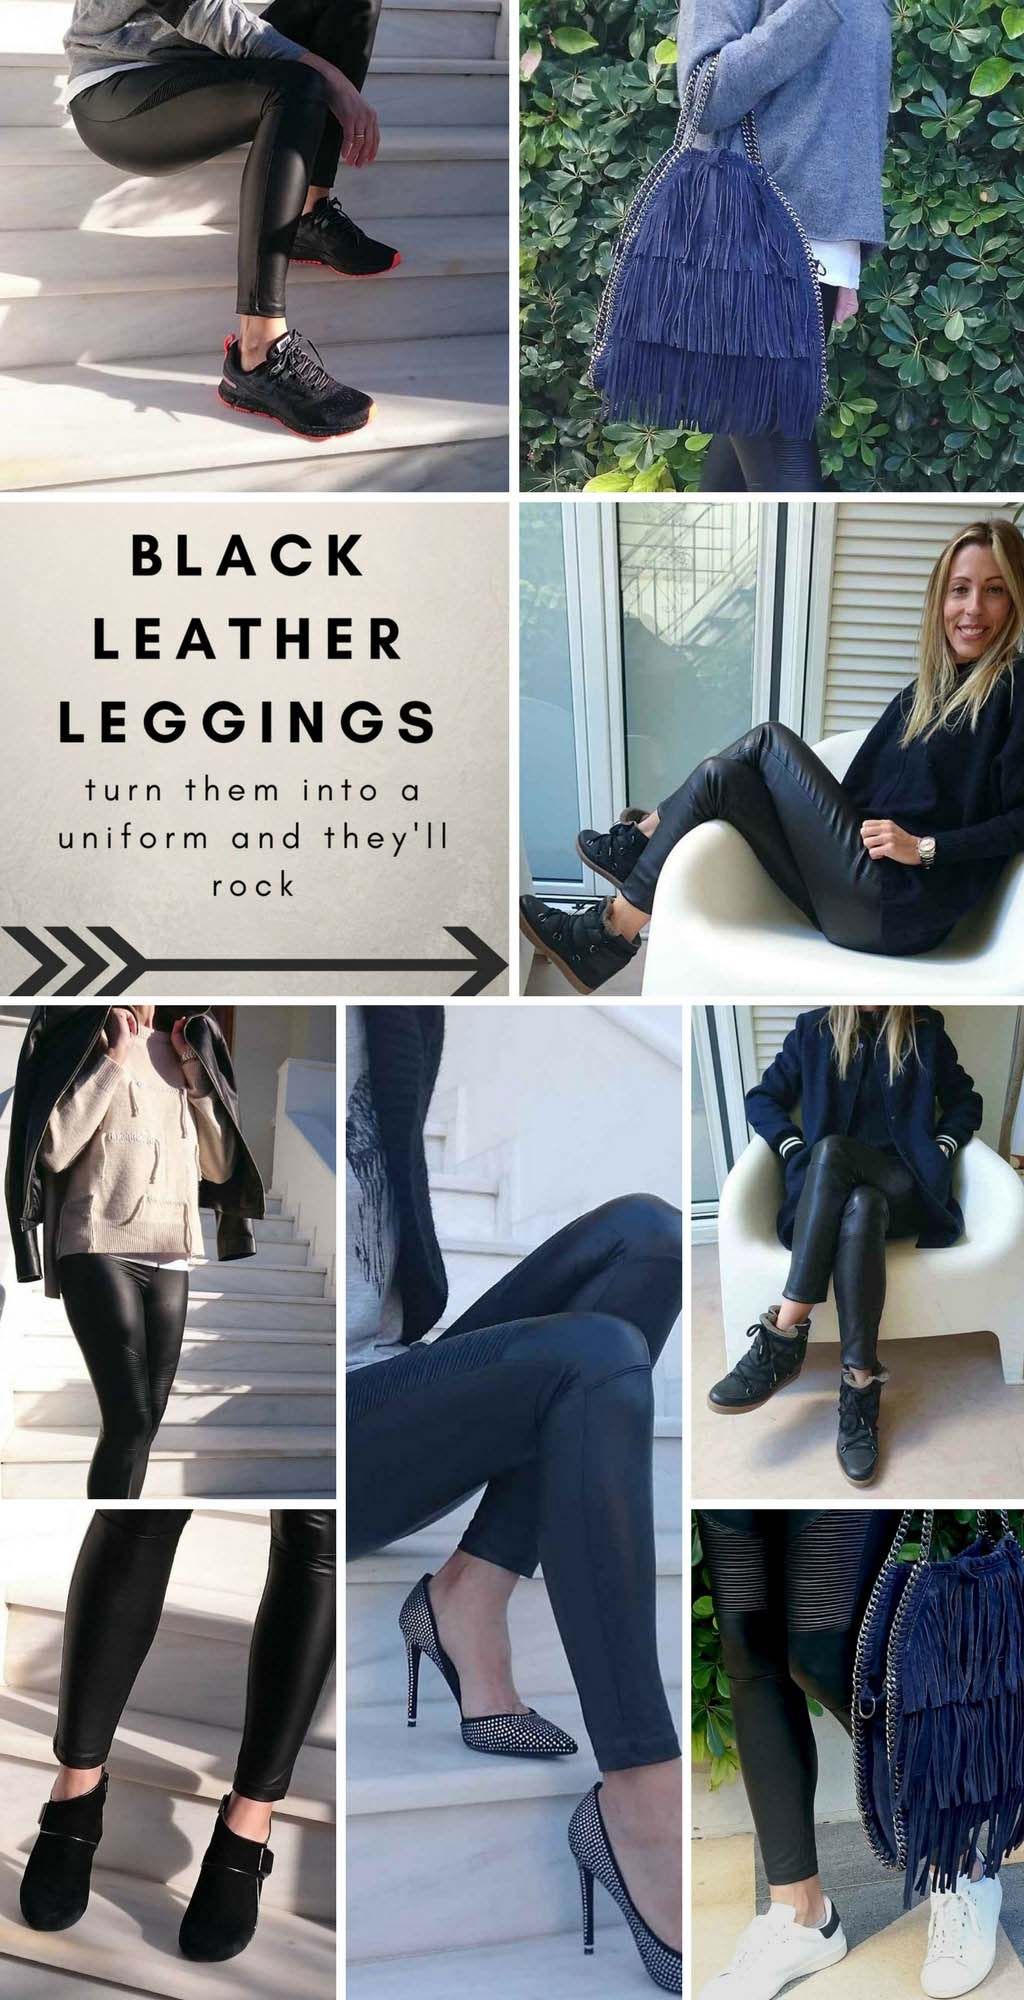 A collage of images where Elisabeth is wearing black leather pants and Velvet black faux leather leggings.